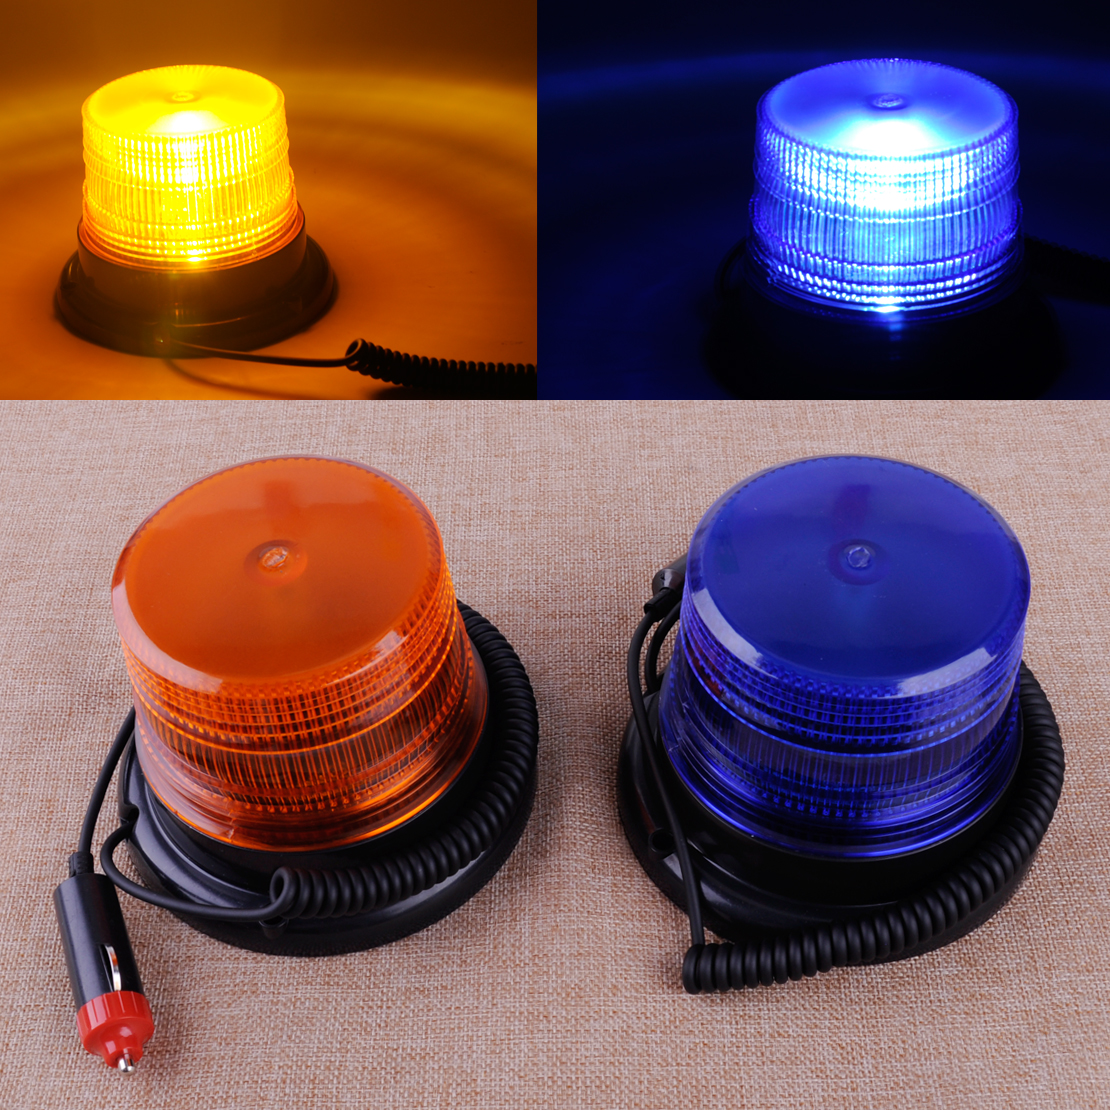 CITALL New 12V Car Truck Bus Beacon Rotate Strobe Magnetic Flash Emergency Beacon Strobe ...